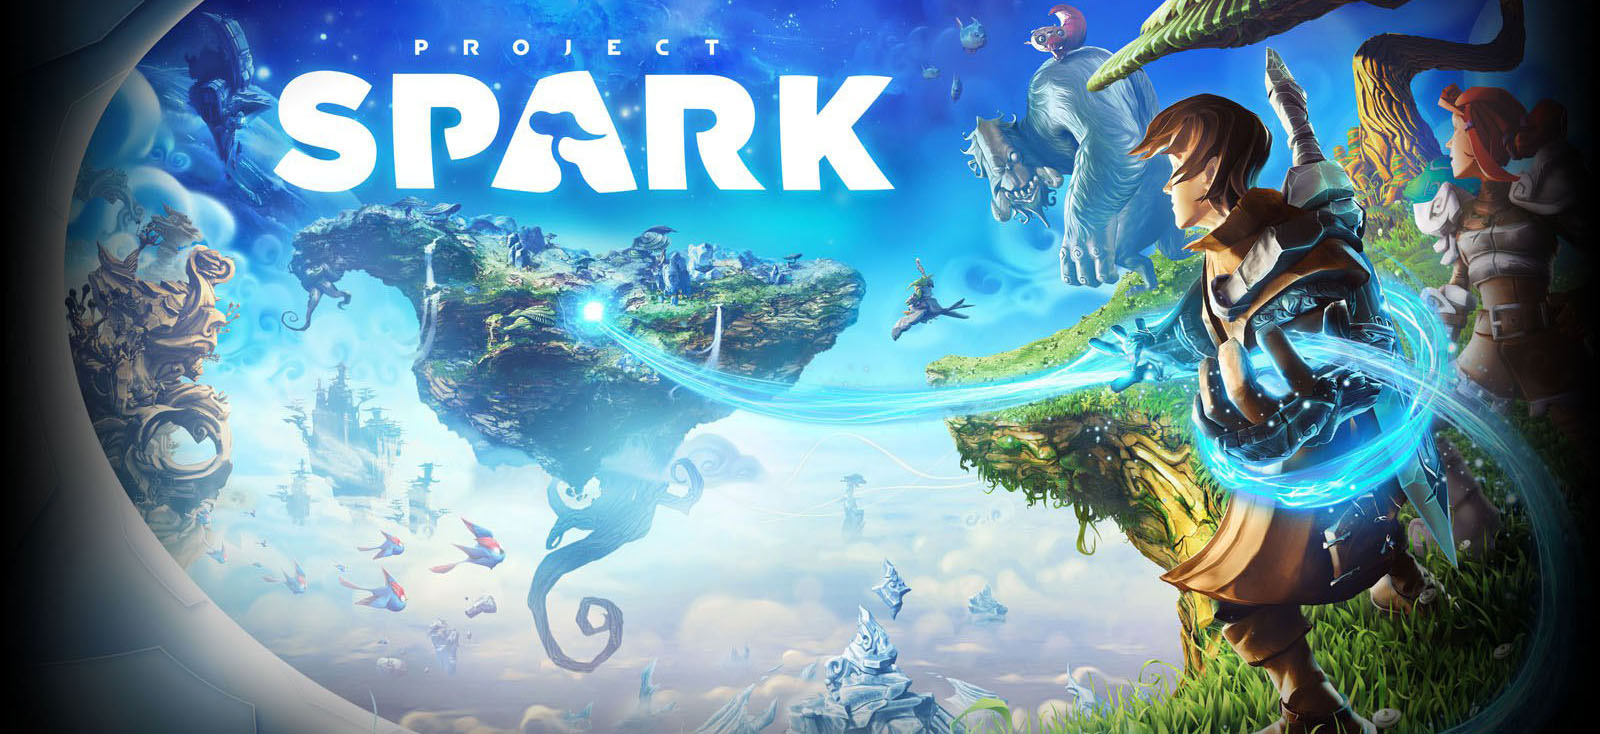 project spark update - banner